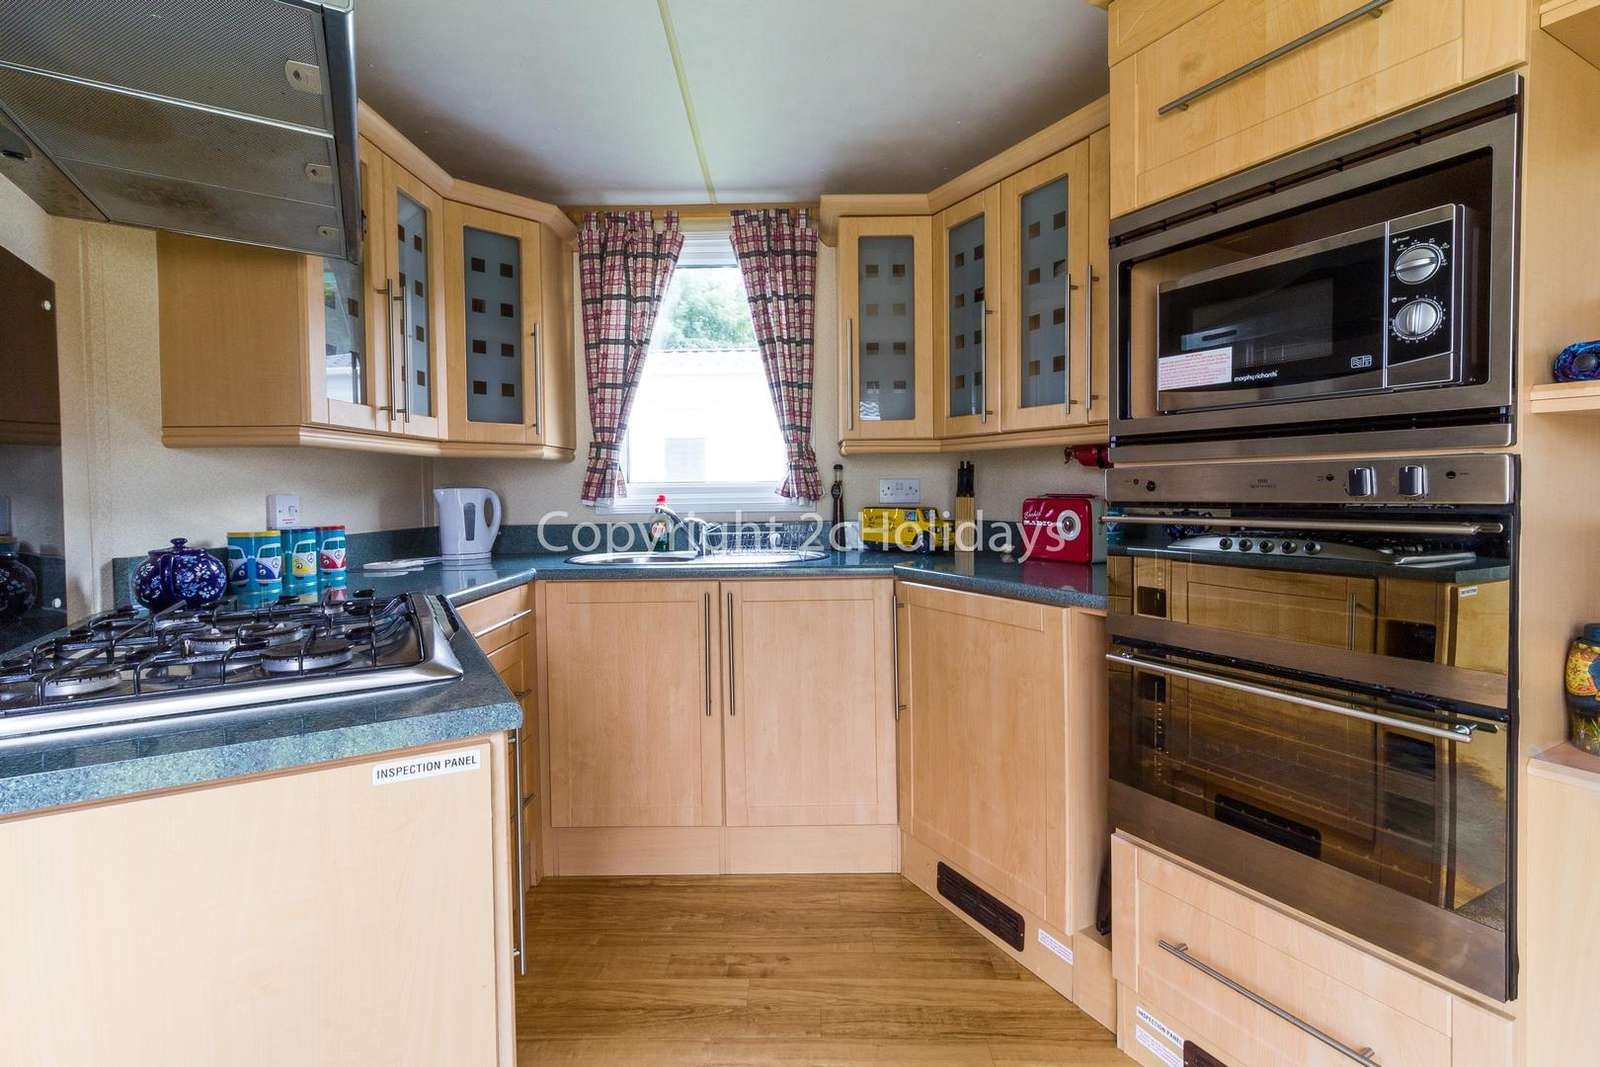 A fully equipped kitchen, perfect for self-catering holiday!